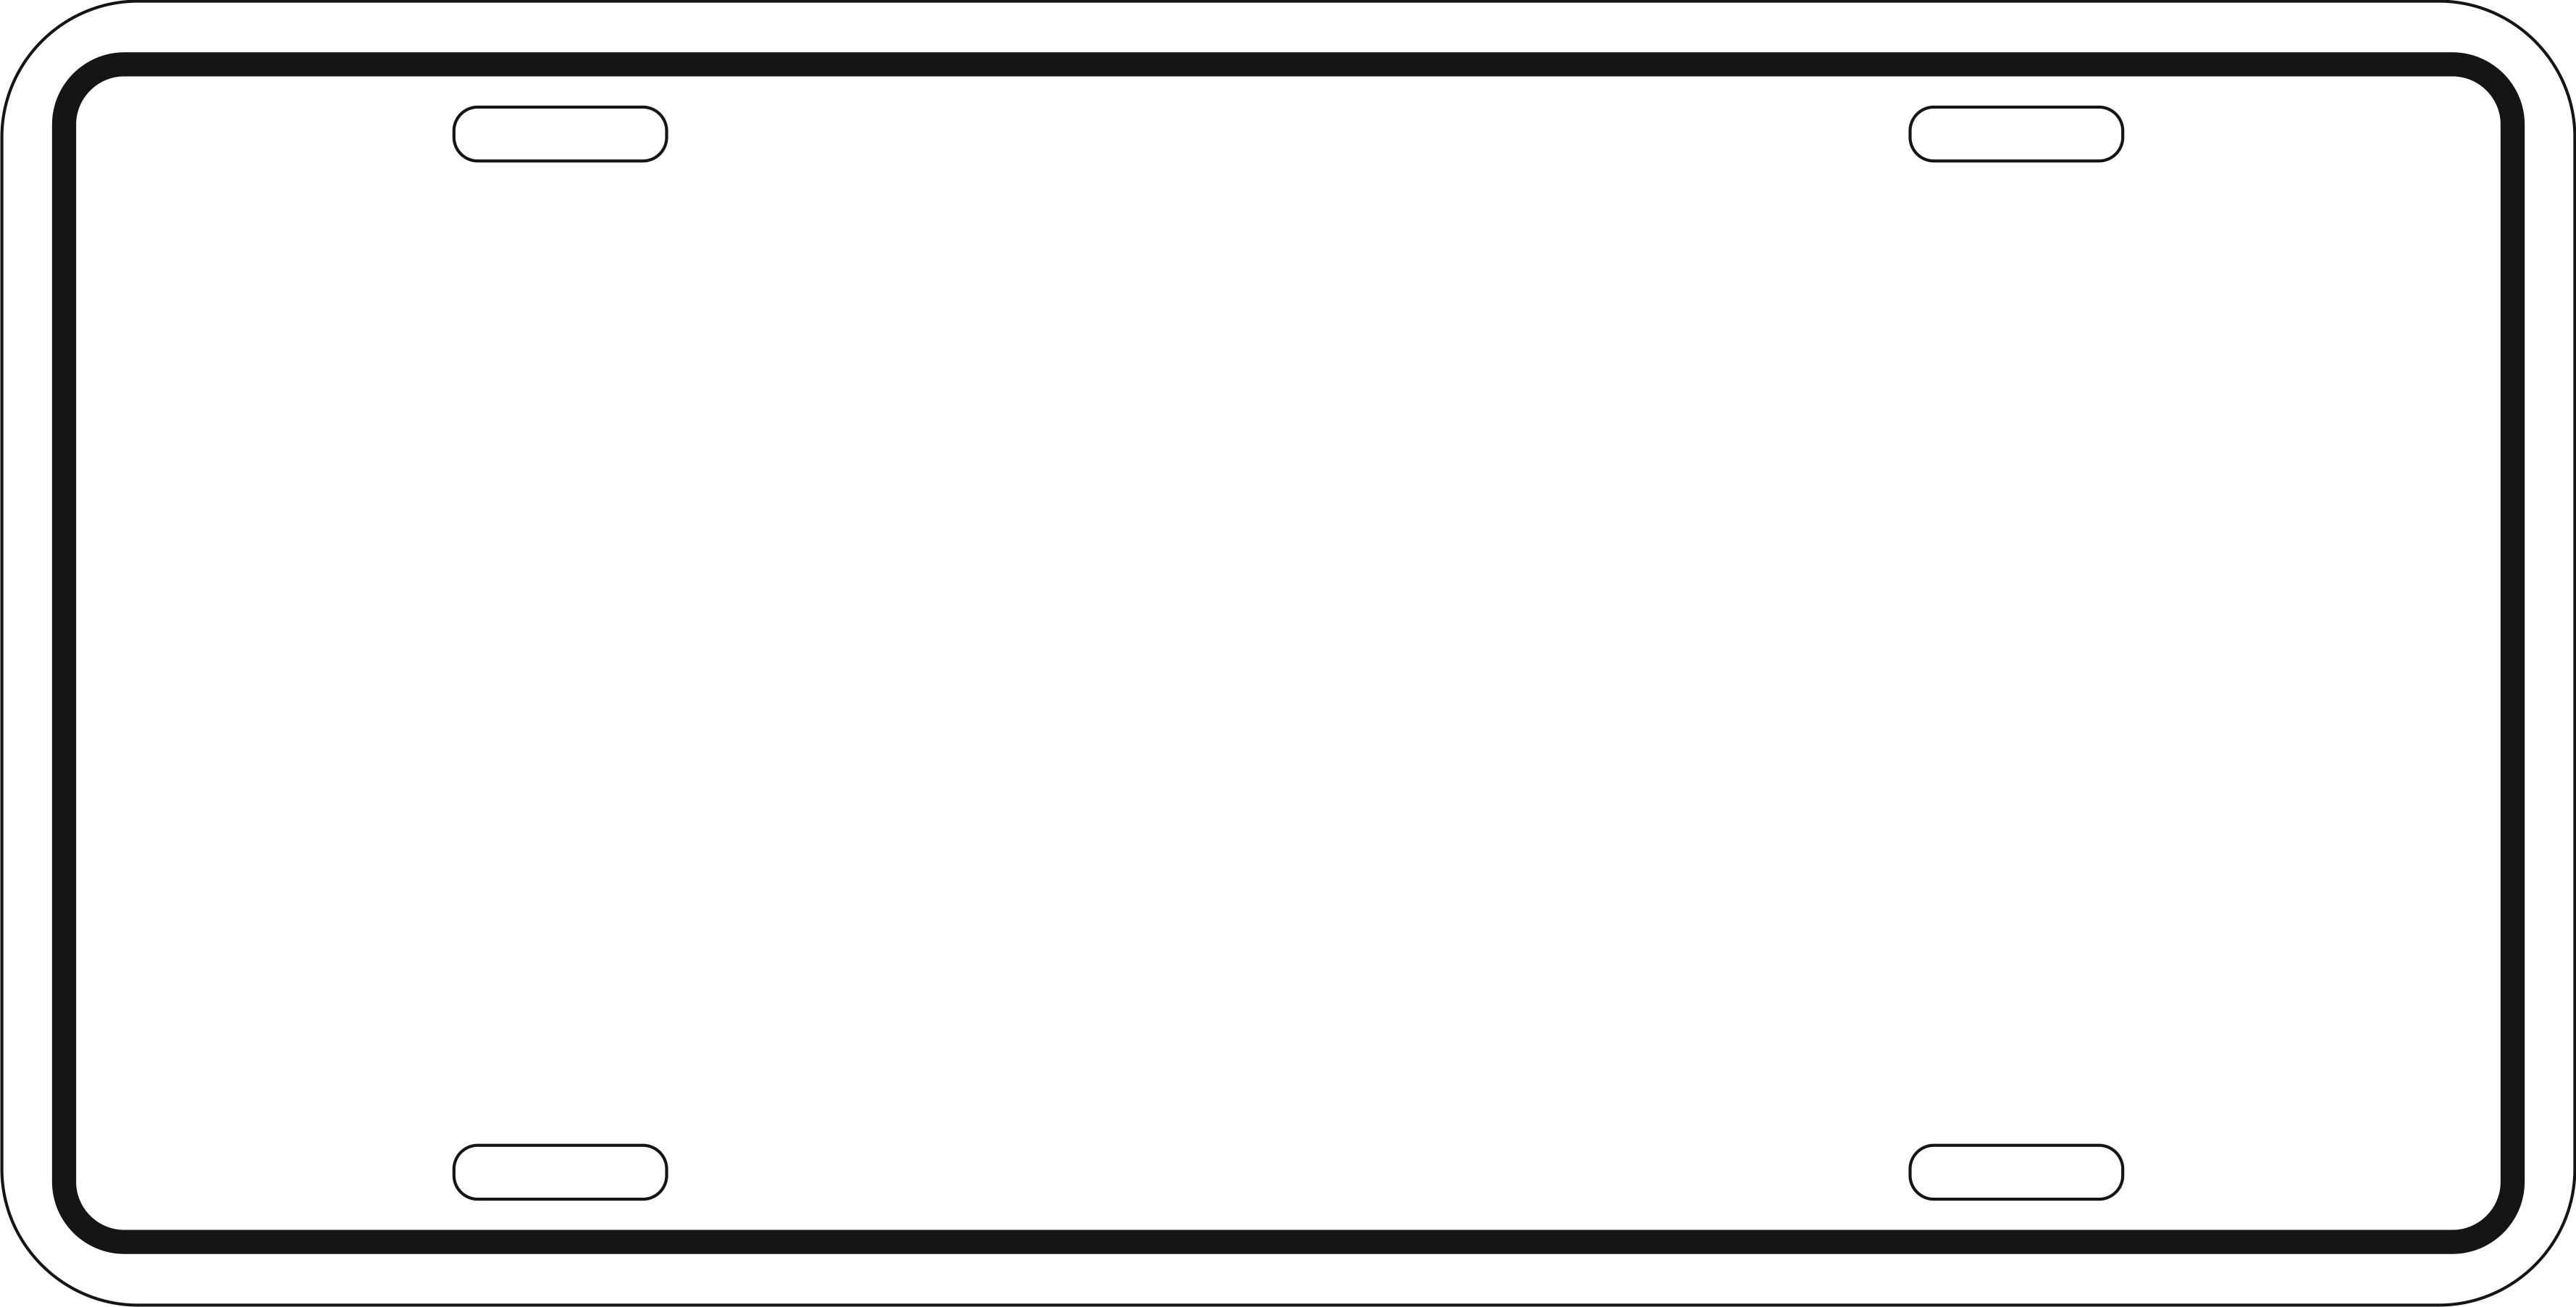 Blank license plate clipart.